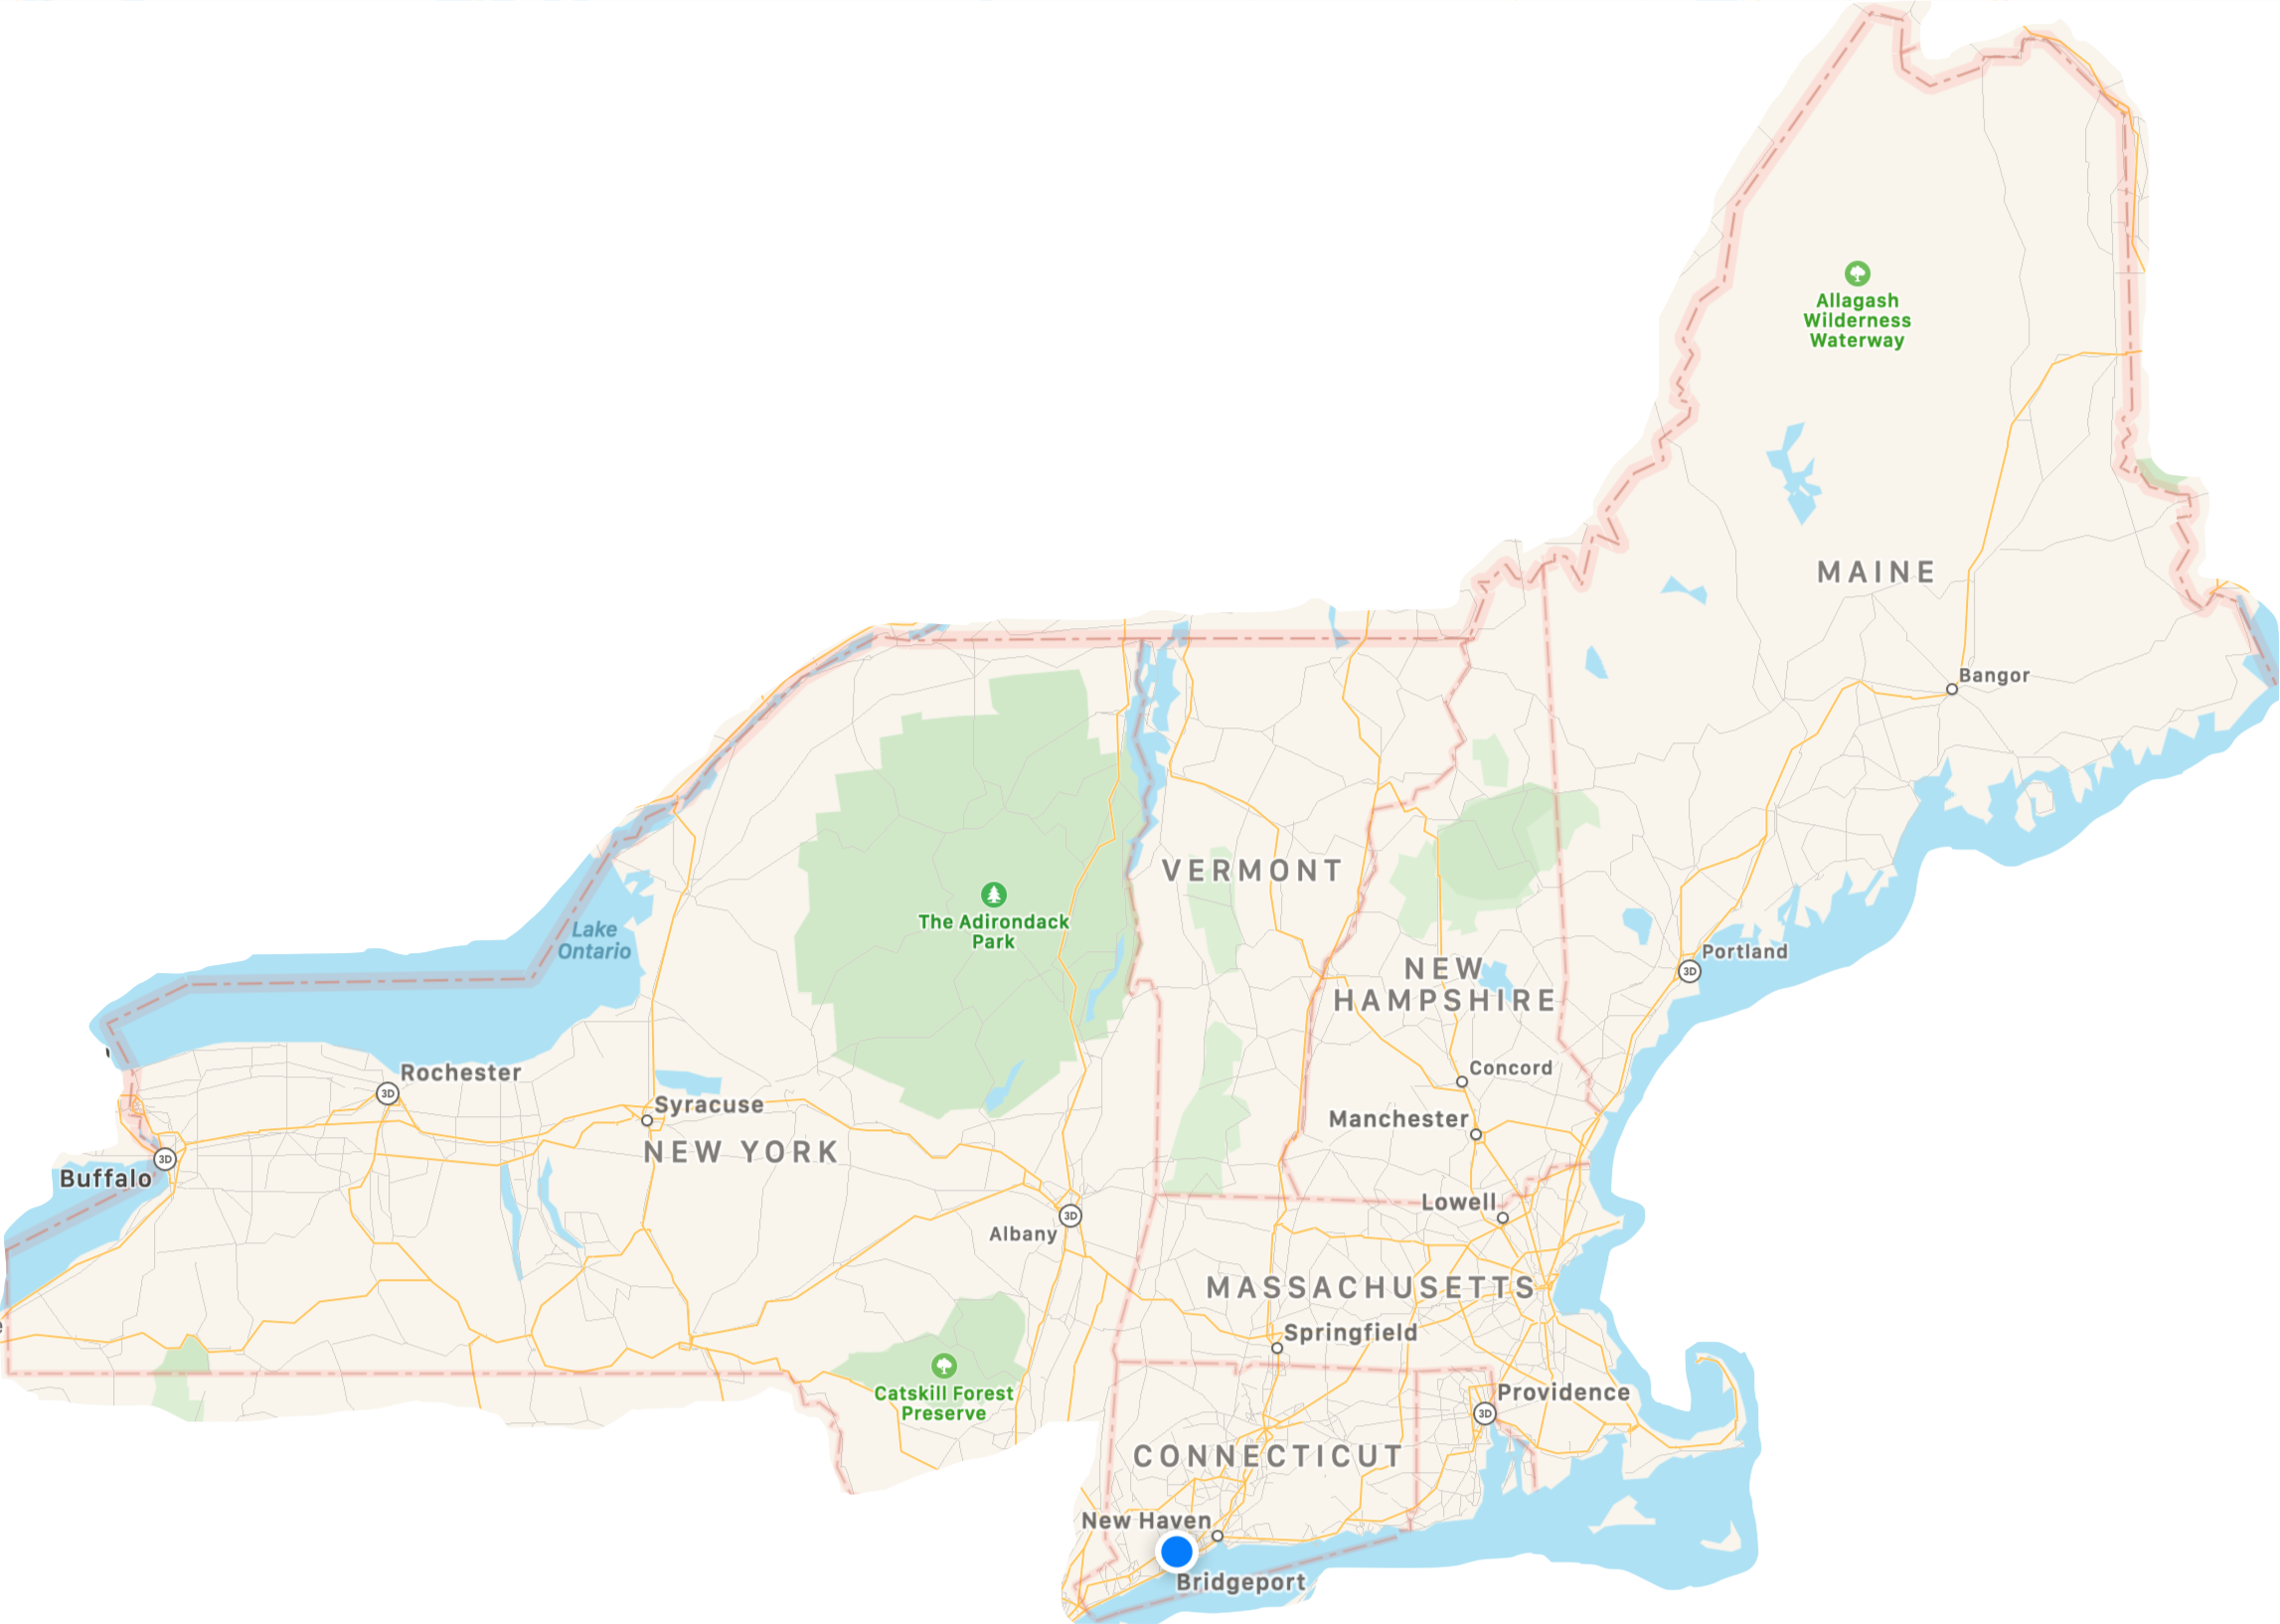 Manufacturer's representative serving New England and Upstate New York